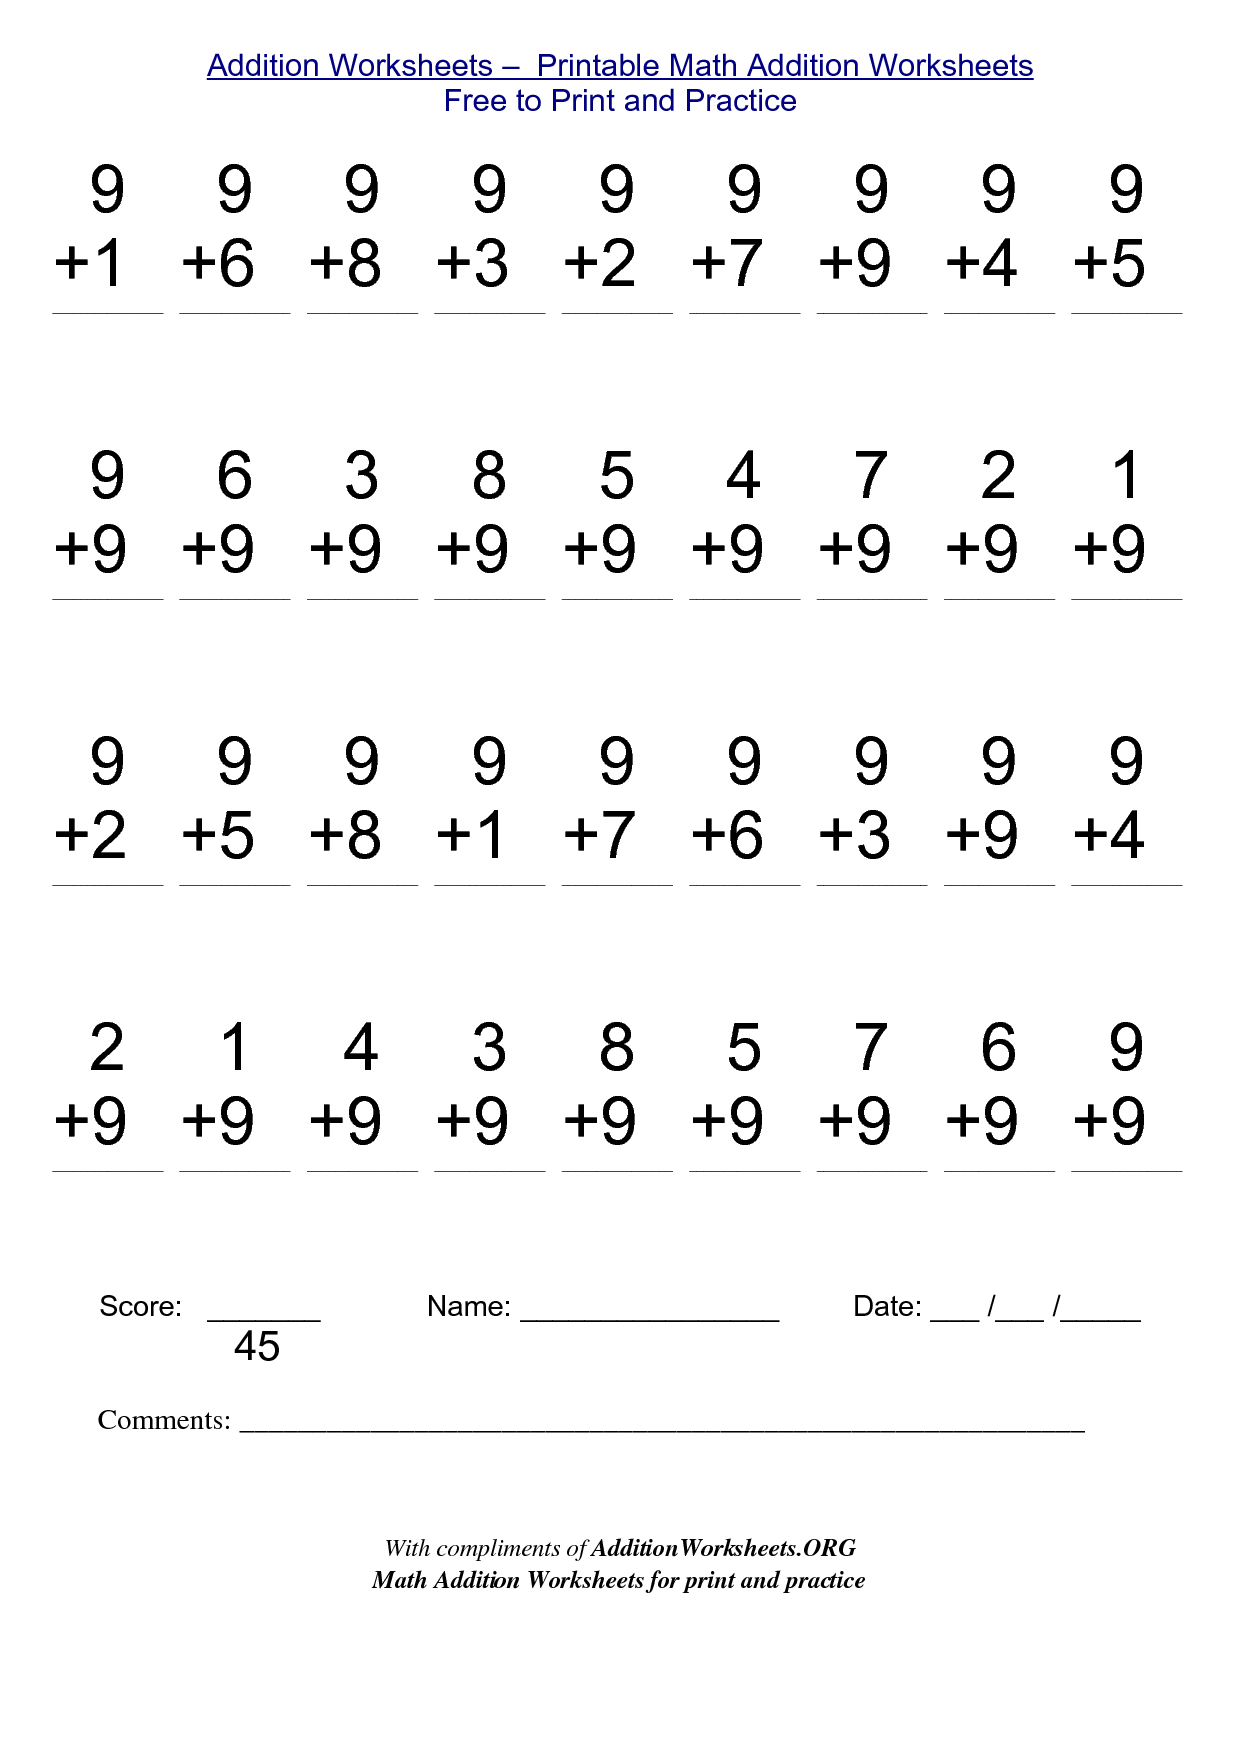 Worksheets Math Worksheets To Print math worksheets for free to print alot com me pinterest com